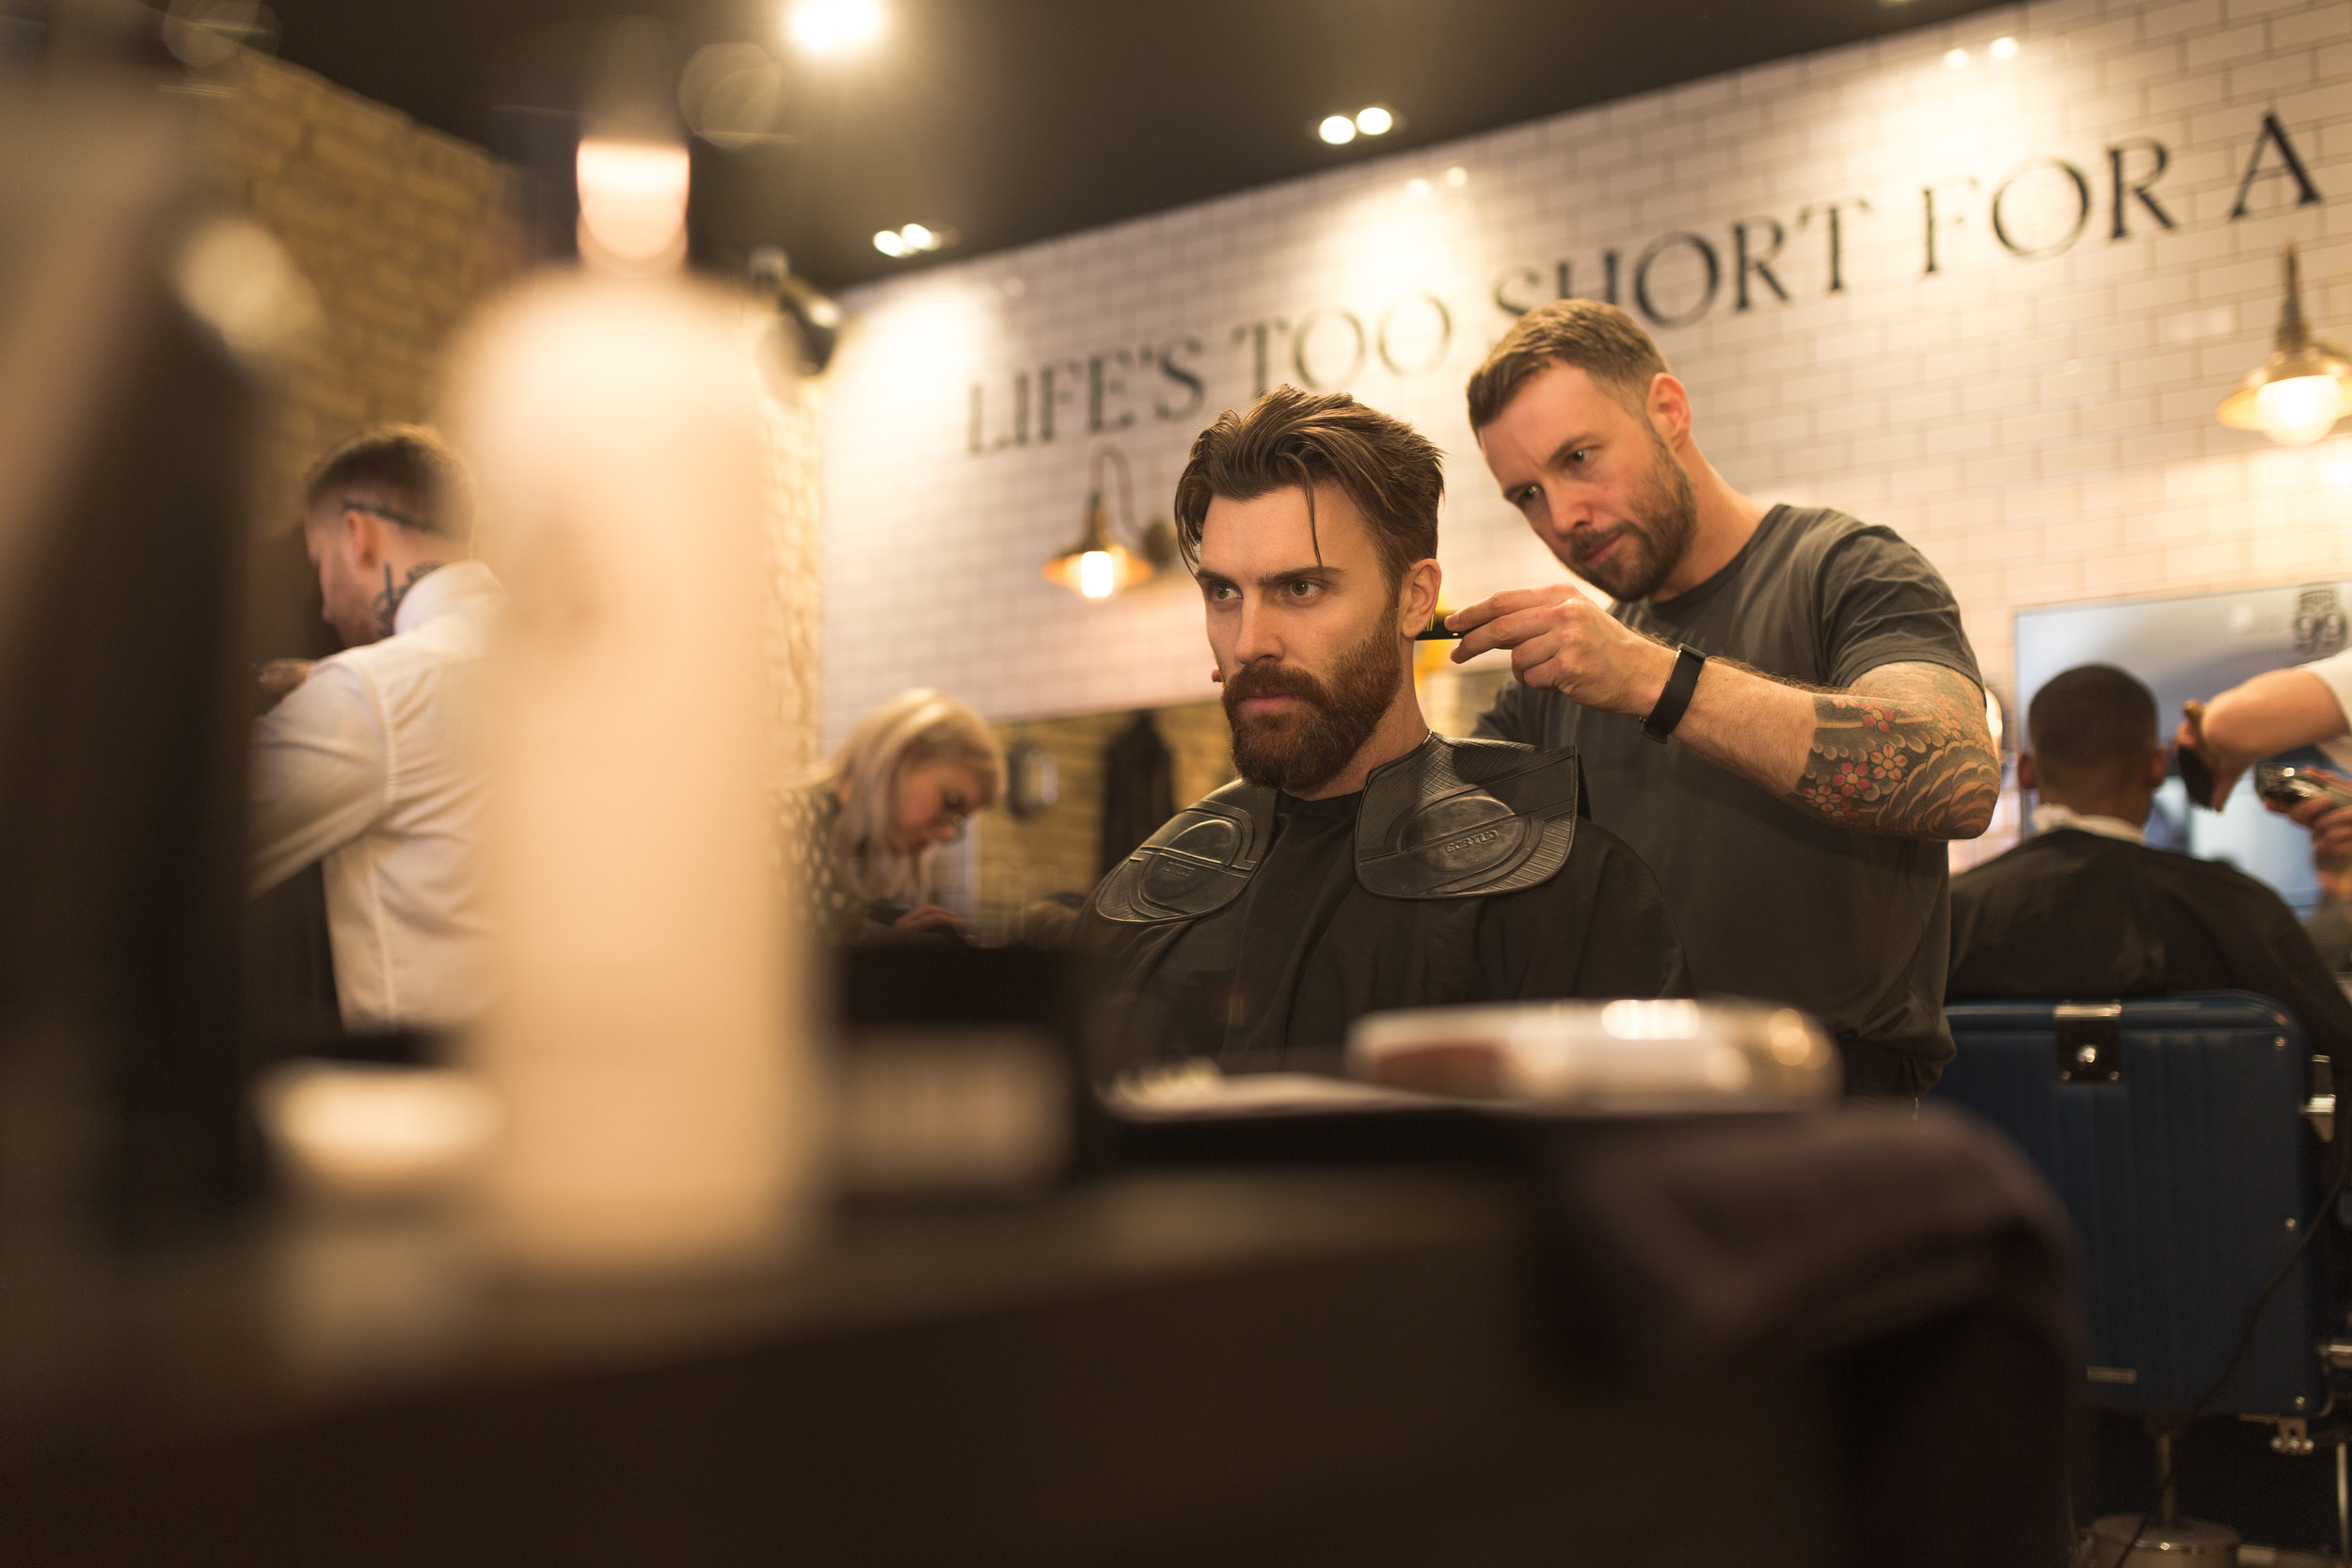 House 99 has us get cleaned up for the event at Ruffian's Barber Shop in Shoreditch which is another great spot to pop in.